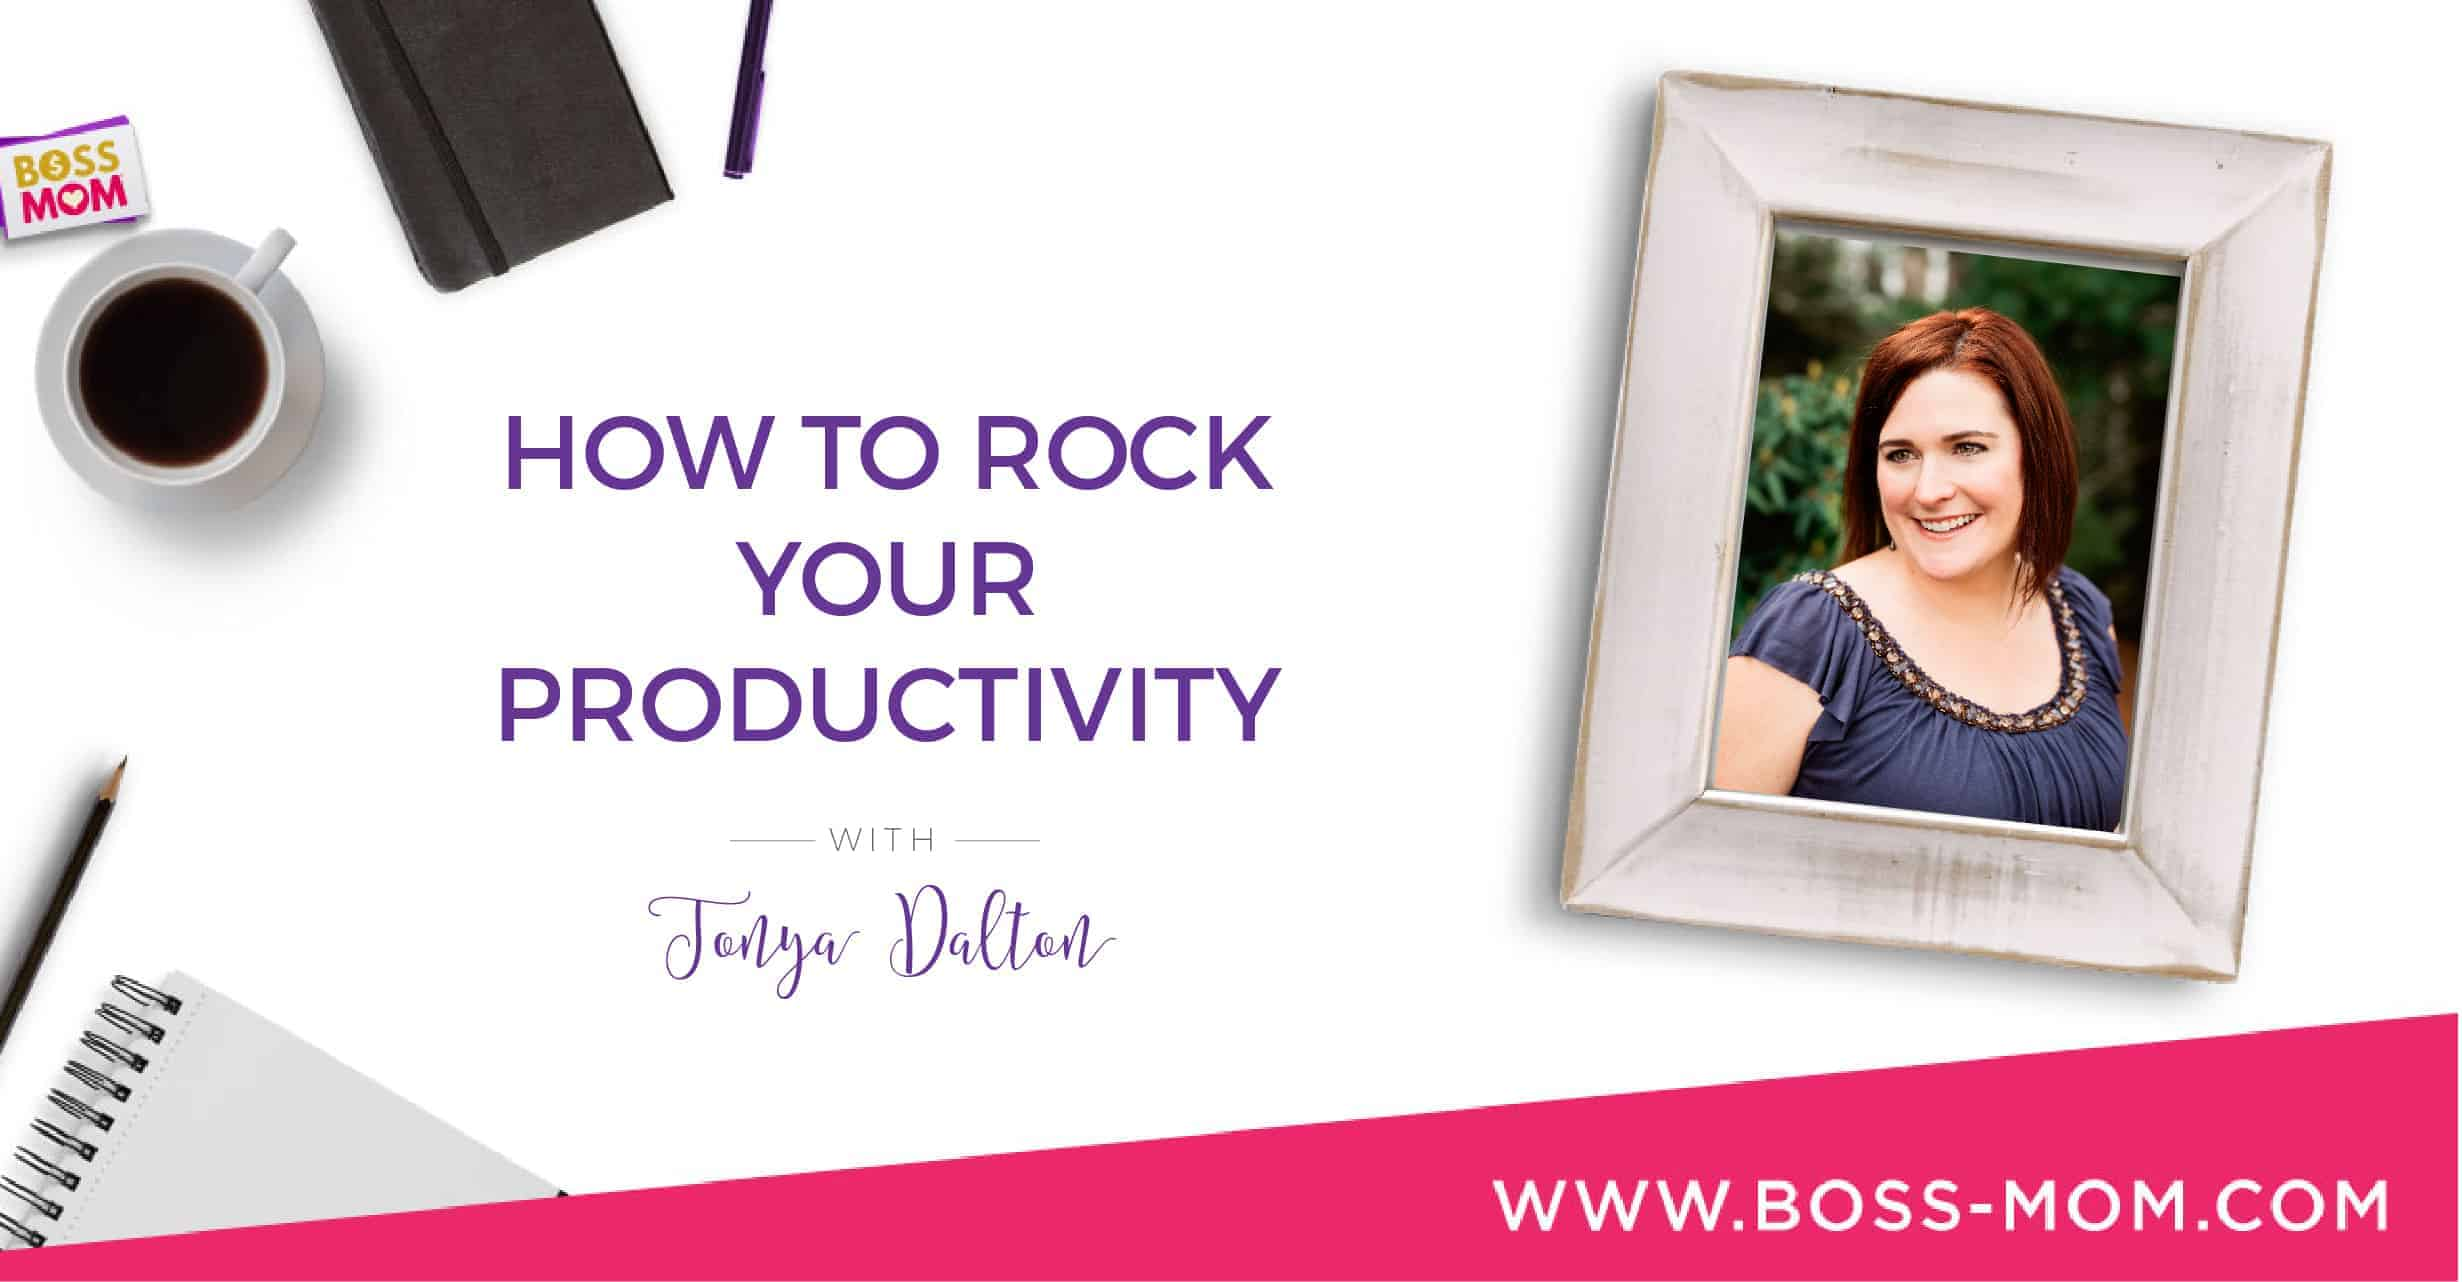 Episode 198: How to Rock Your Productivity with Tonya Dalton